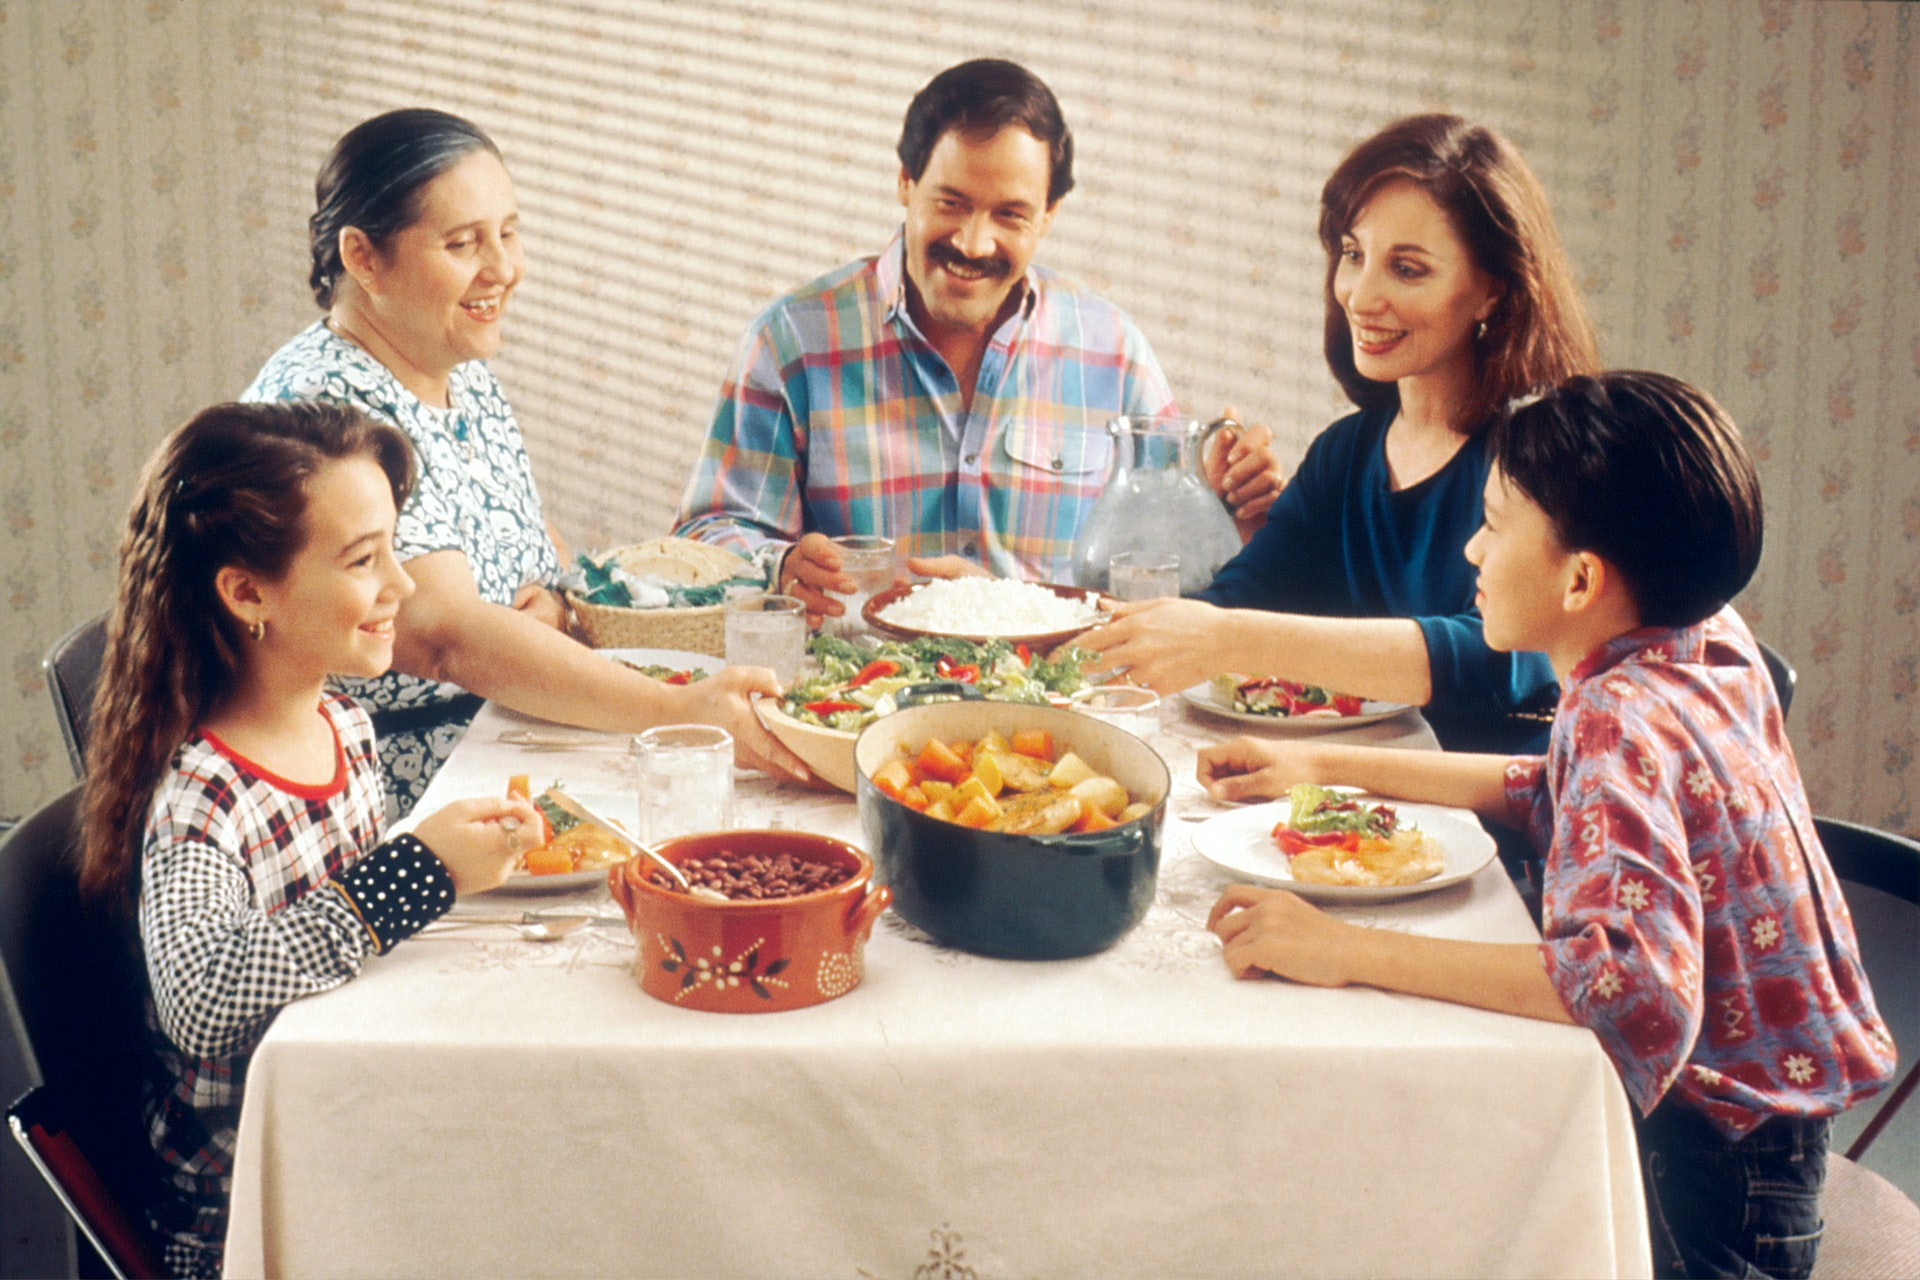 5 uncomfortable topics to avoid at family gatherings